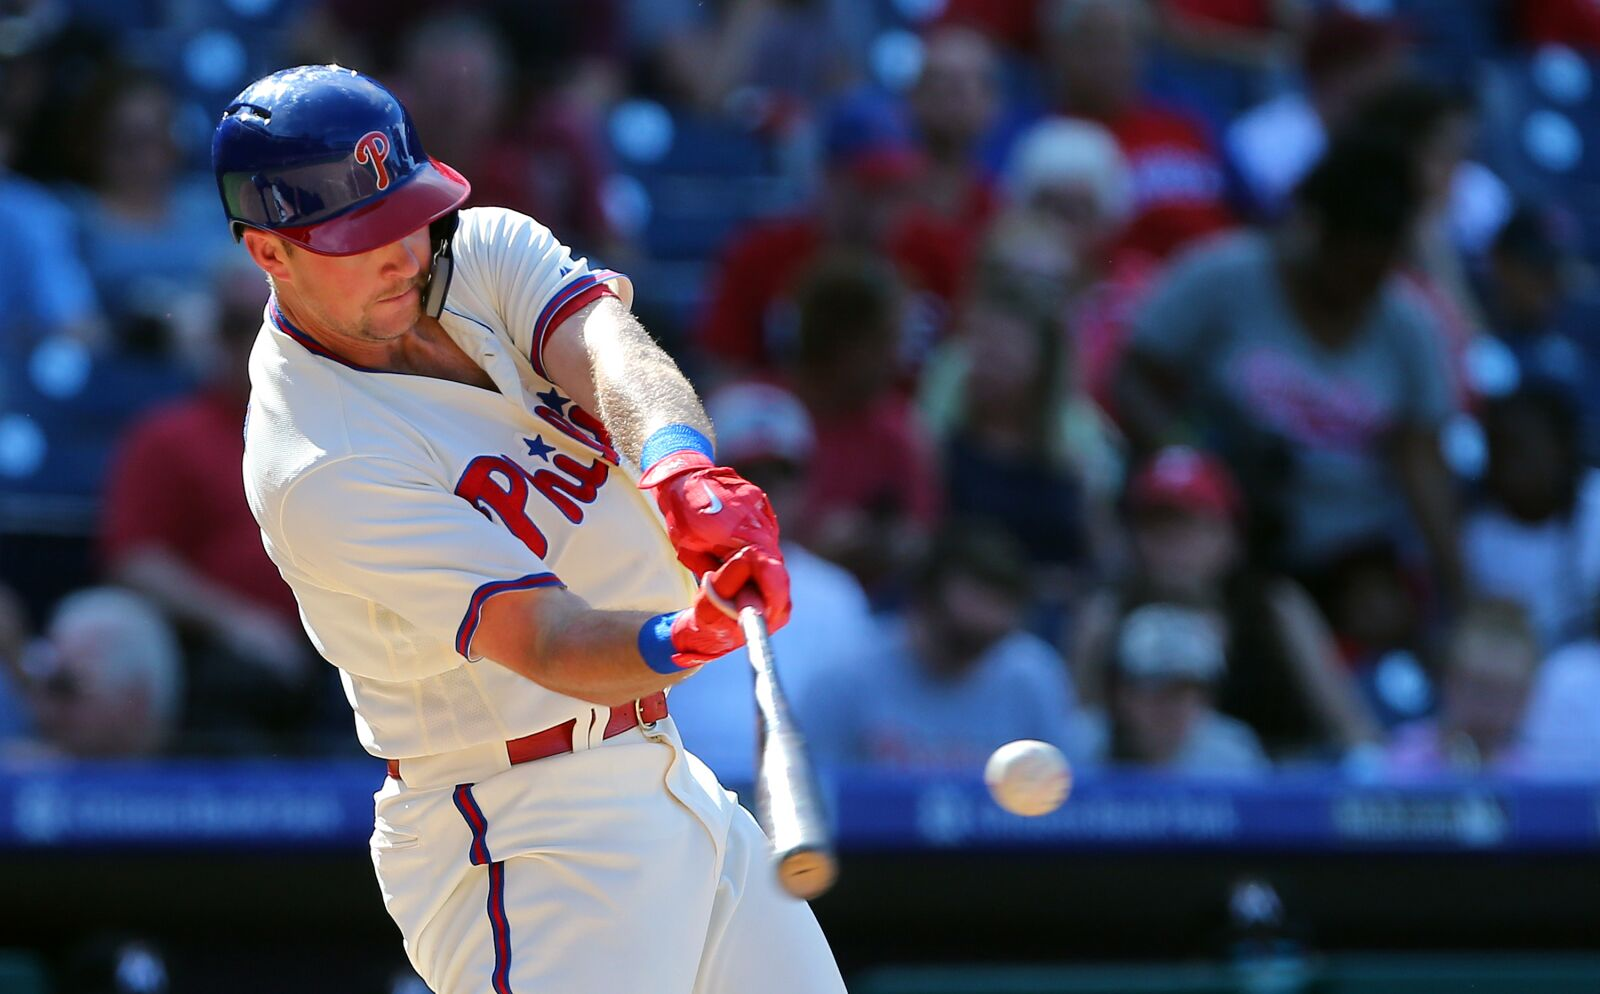 Phillies: Rhys Hoskins signs with super-agent Scott Boras